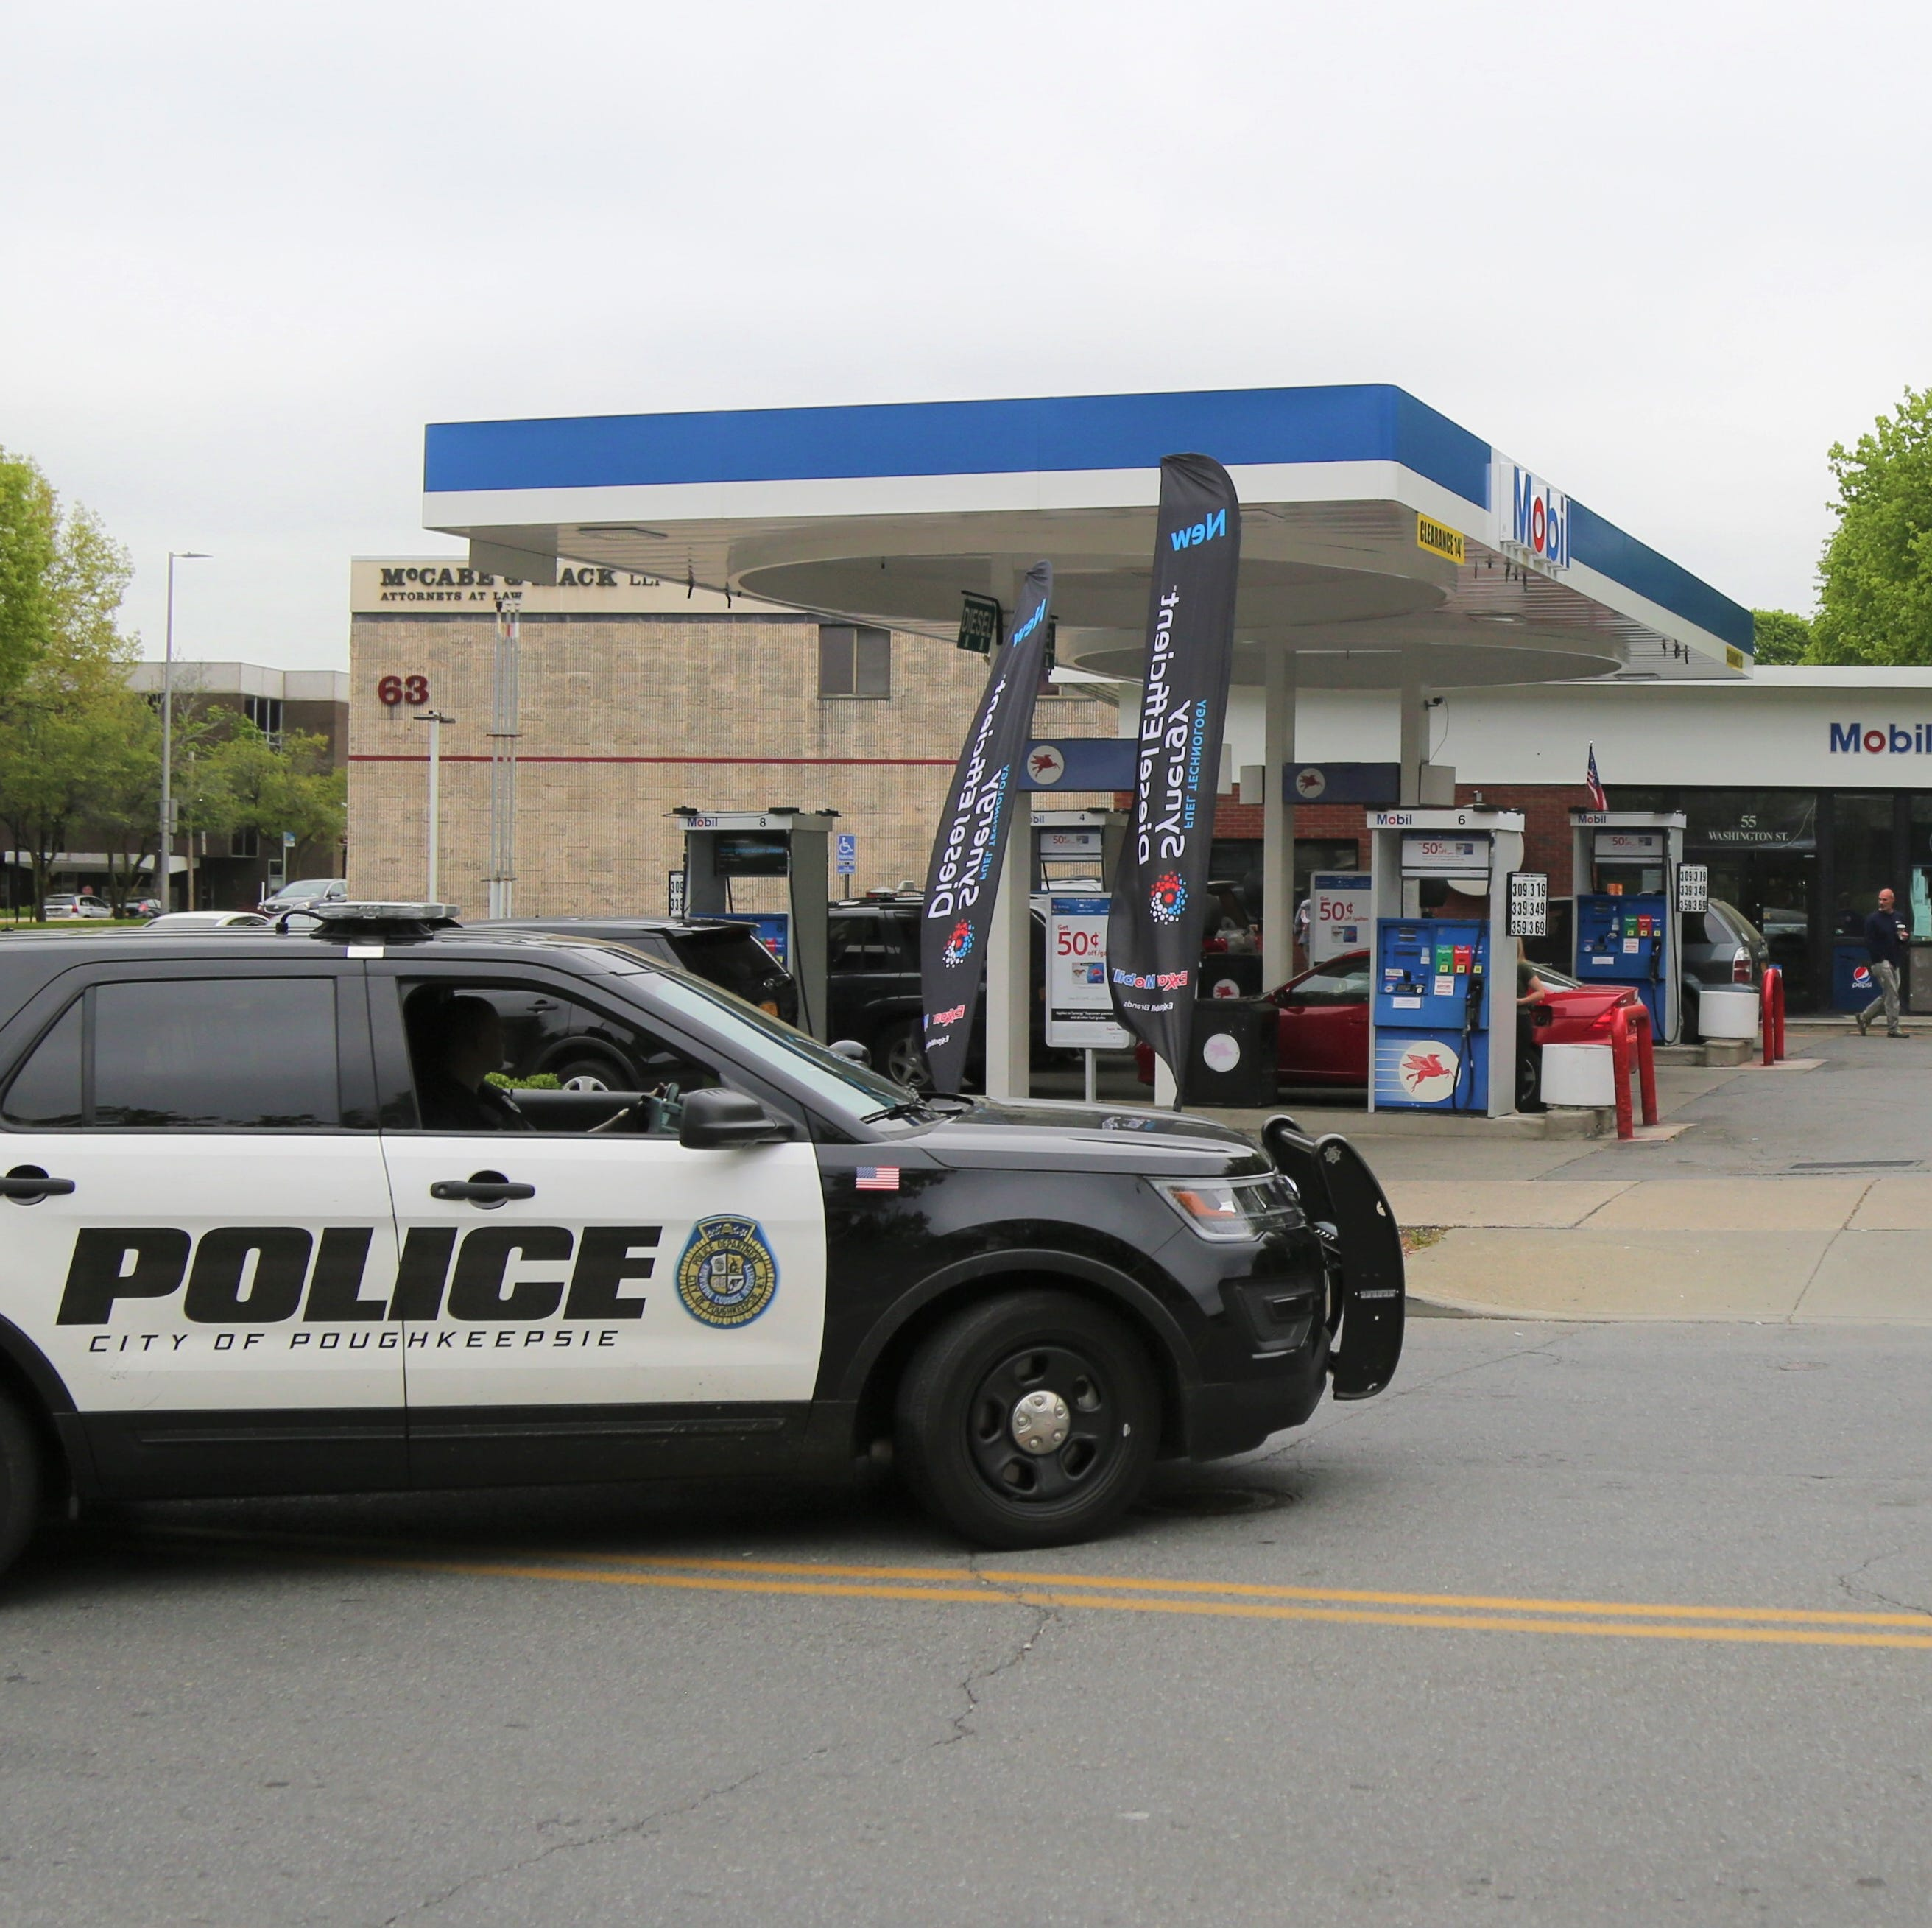 A 24-year-old Mobil gas station employee was stabbed early Tuesday morning on May 5, 2019. This photo was taken several hours following the altercation.